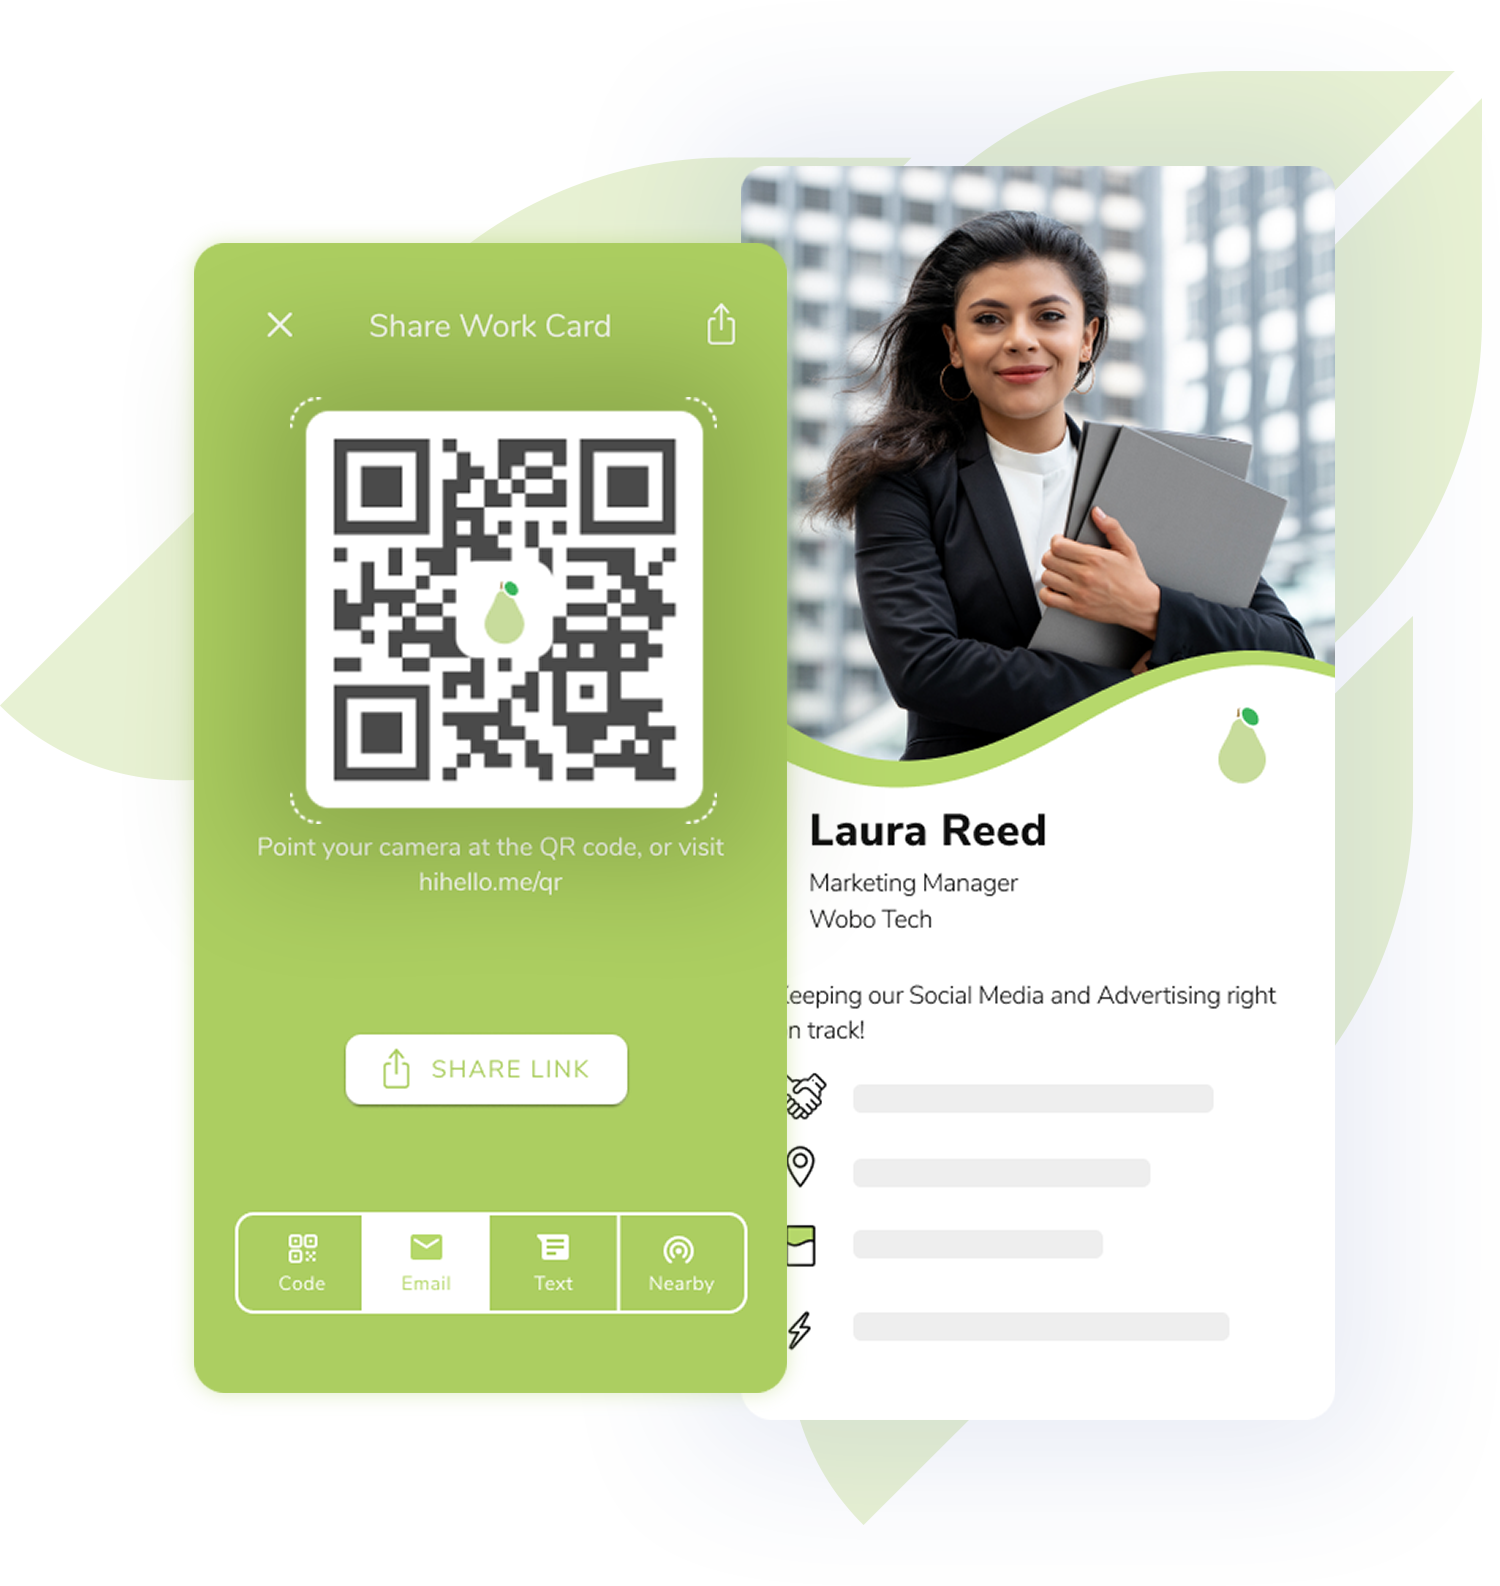 Digital business card with a QR code and email and text sharing options with corporate branding